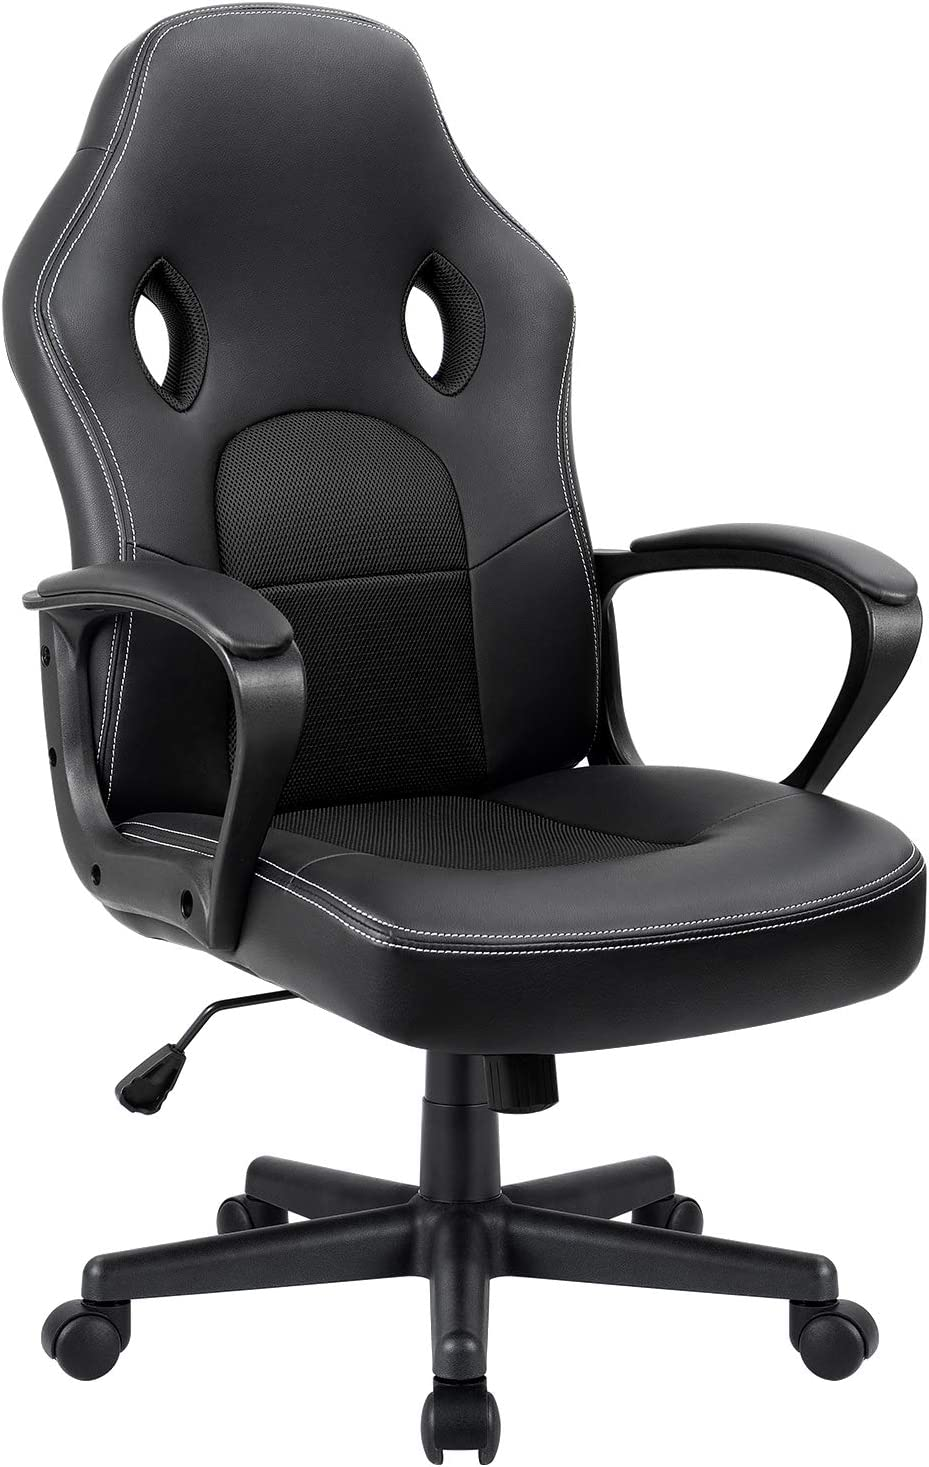 Furmax Office Chair Desk Leather Gaming Chair, High Back Ergonomic Adjustable Racing Chair,Task Swivel Executive Computer Chair Headrest and Lumbar Support Black